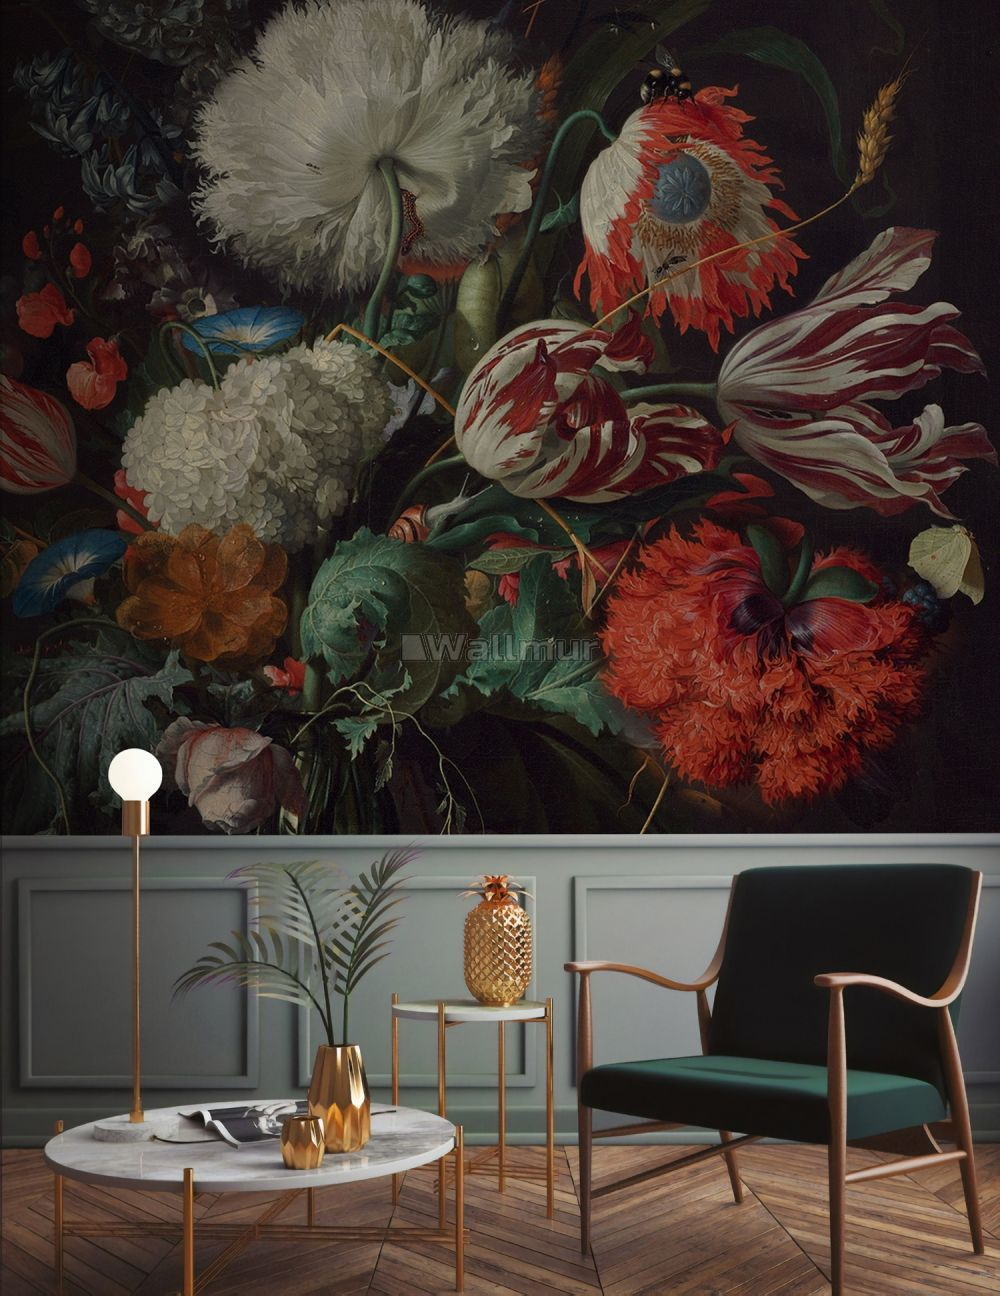 Dark Floral Bouqet with Tulips Wallpaper Mural in 2020